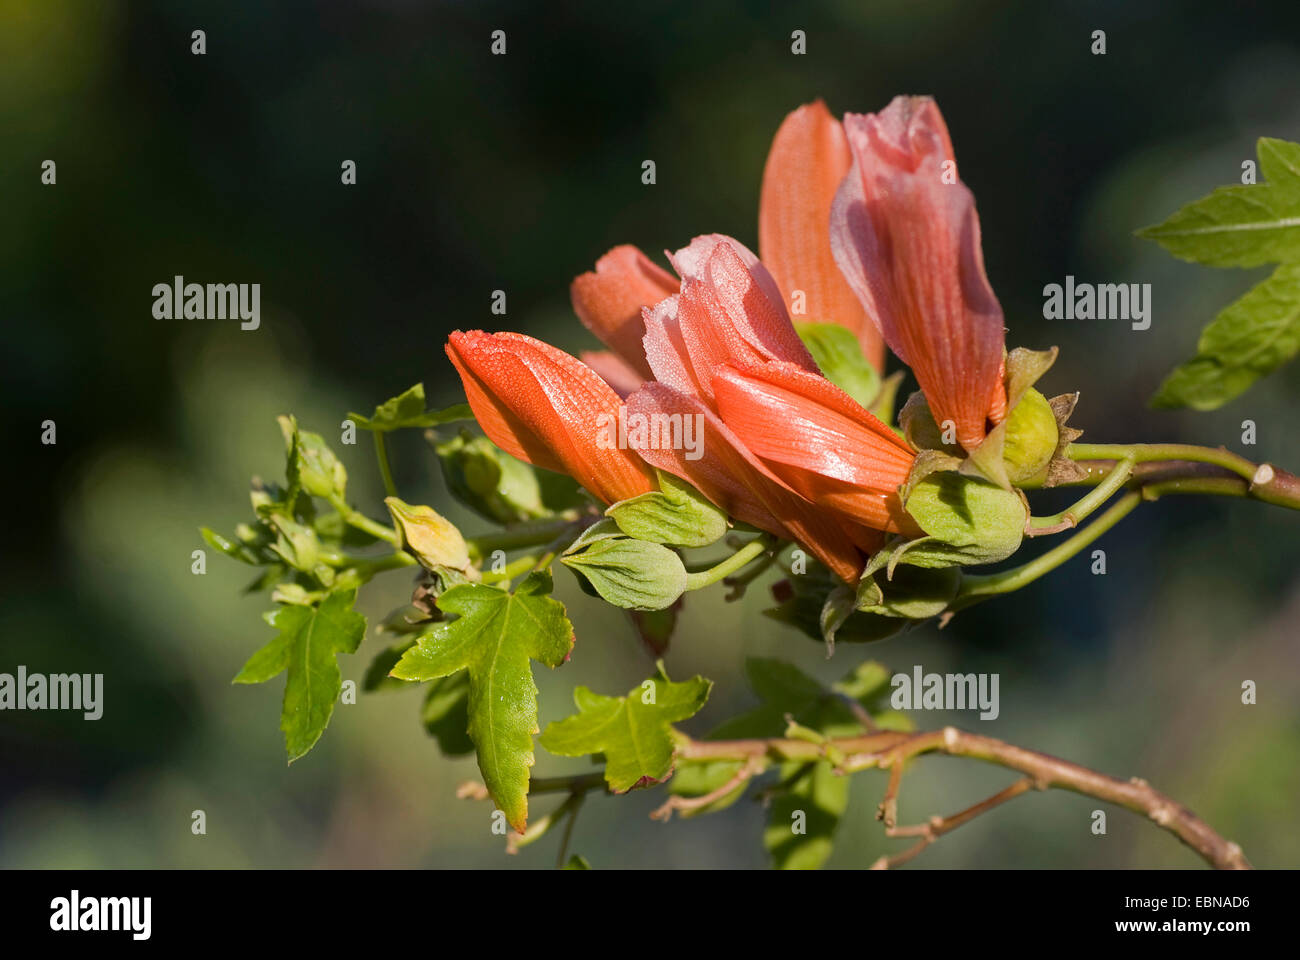 Salmon-red Canary Shrub Mallow (Lavatera phoenicea), blooming, Canary Islands, Tenerife - Stock Image